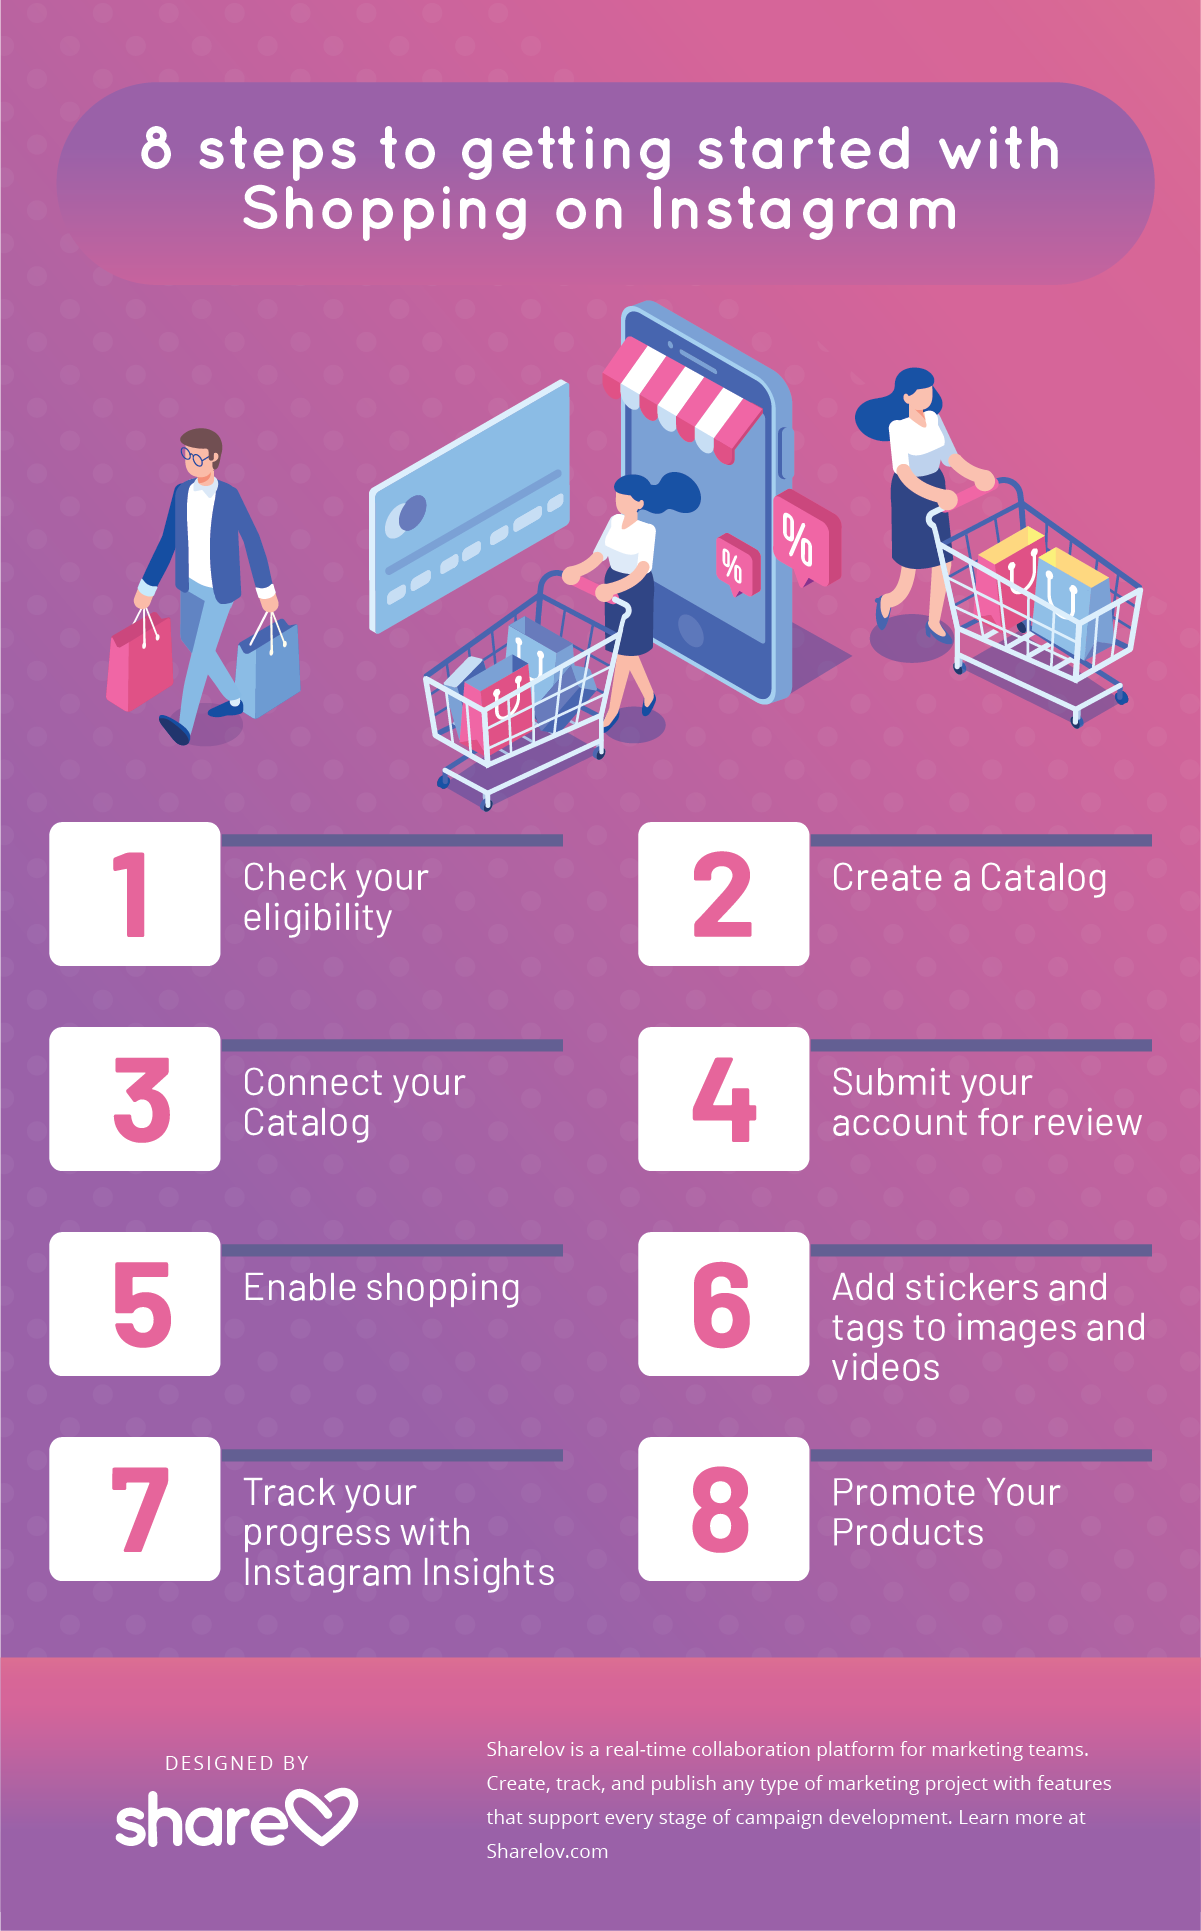 8 steps to getting started with Shopping on Instagram infographic